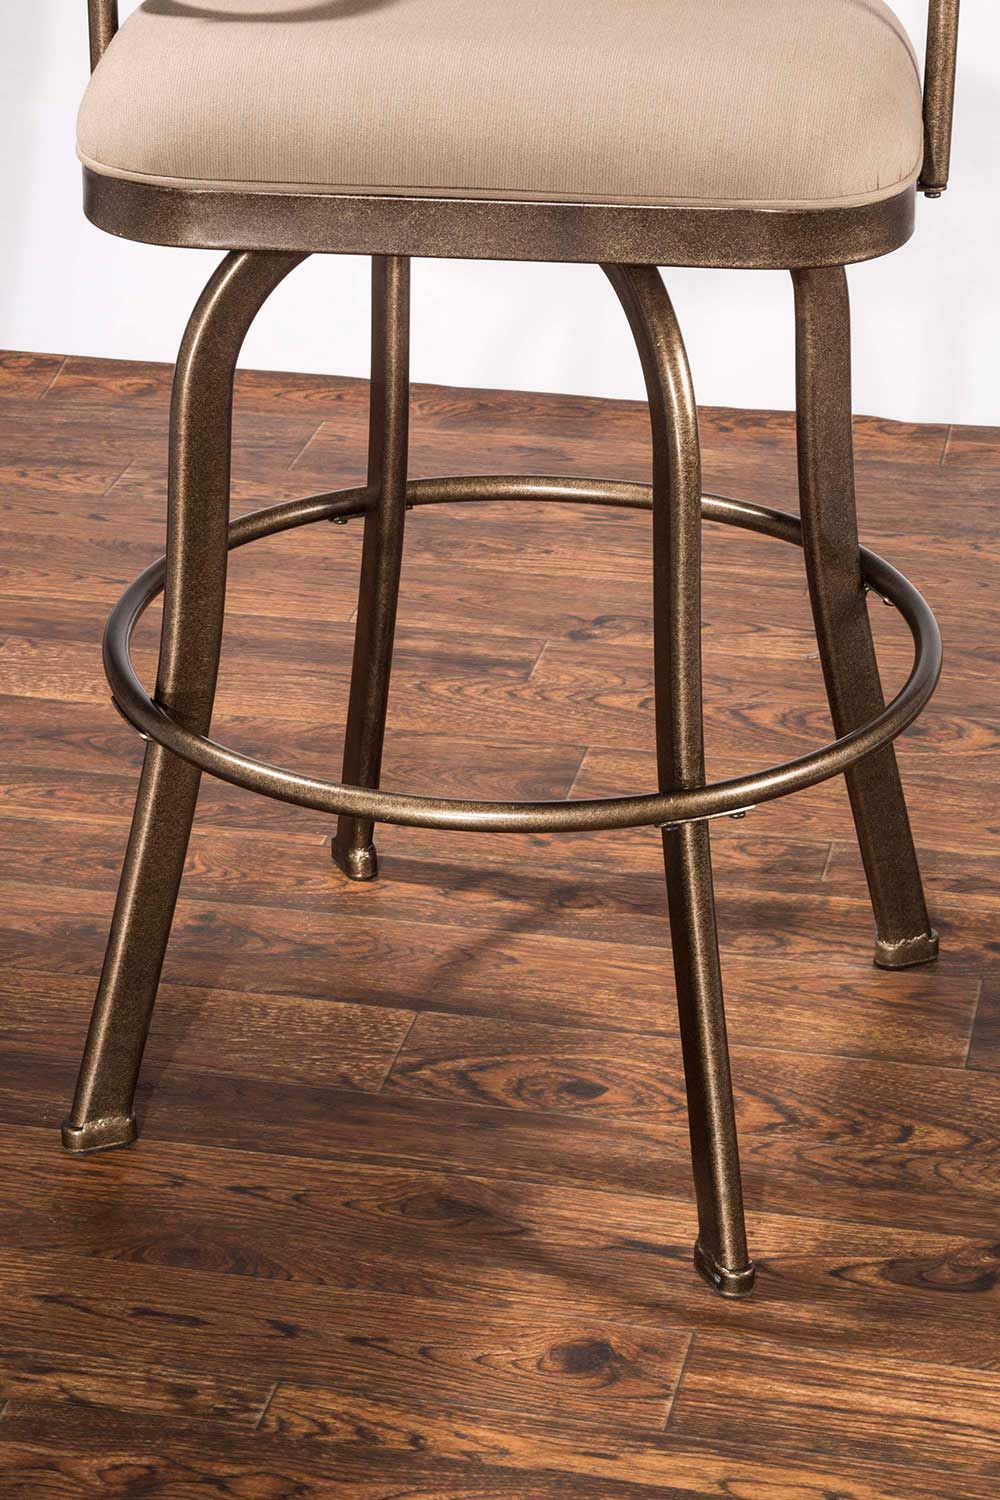 Hillsdale Delk Indoor/Outdoor Swivel Bar Stool - Gold Bronze